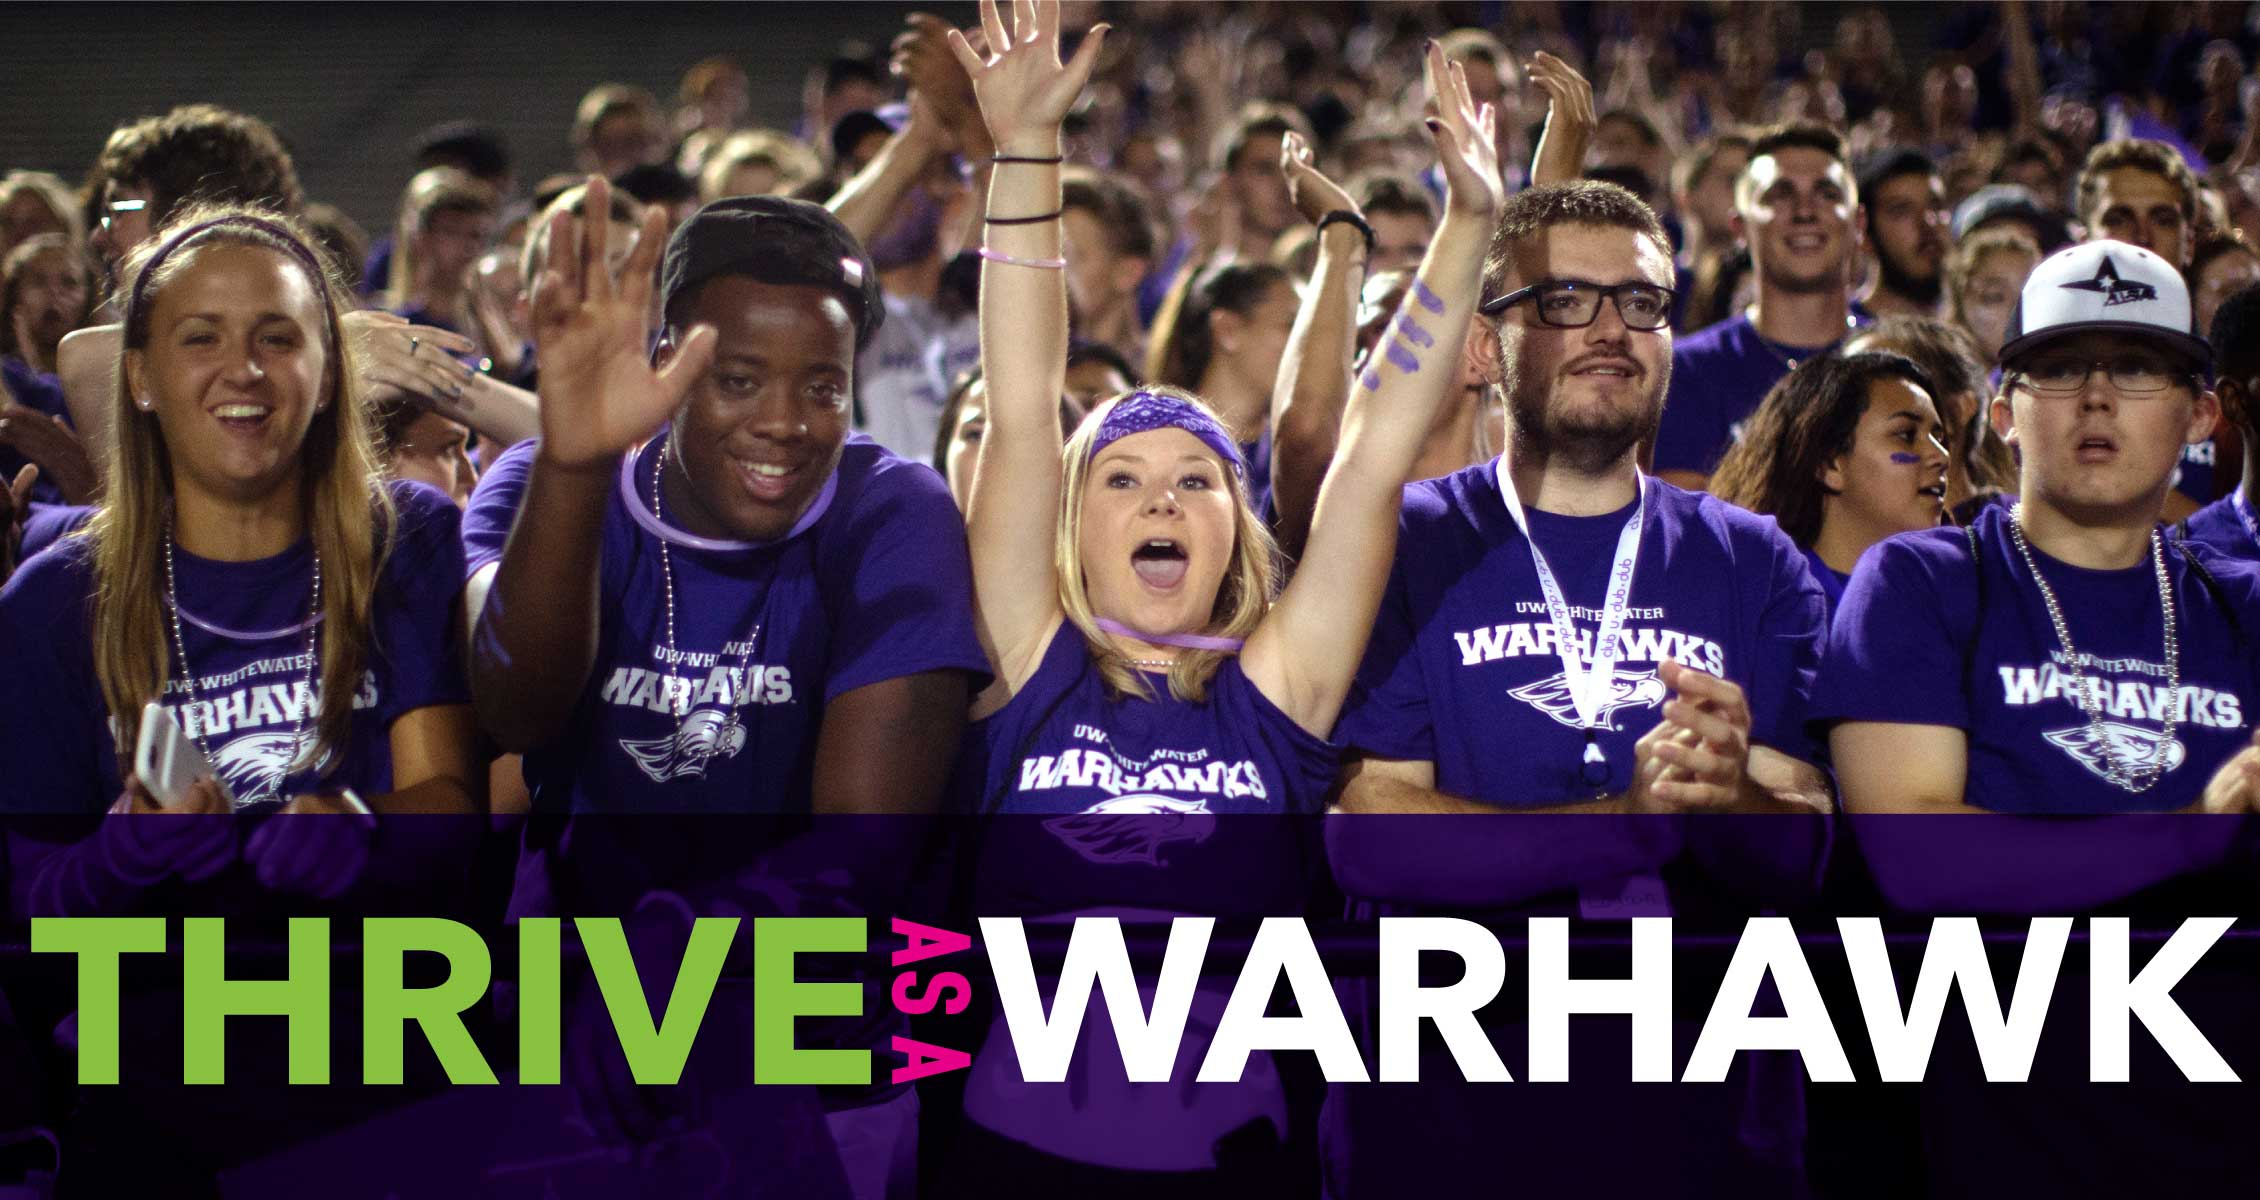 Thrive as a Warhawk: Cheering students in purple in the stands